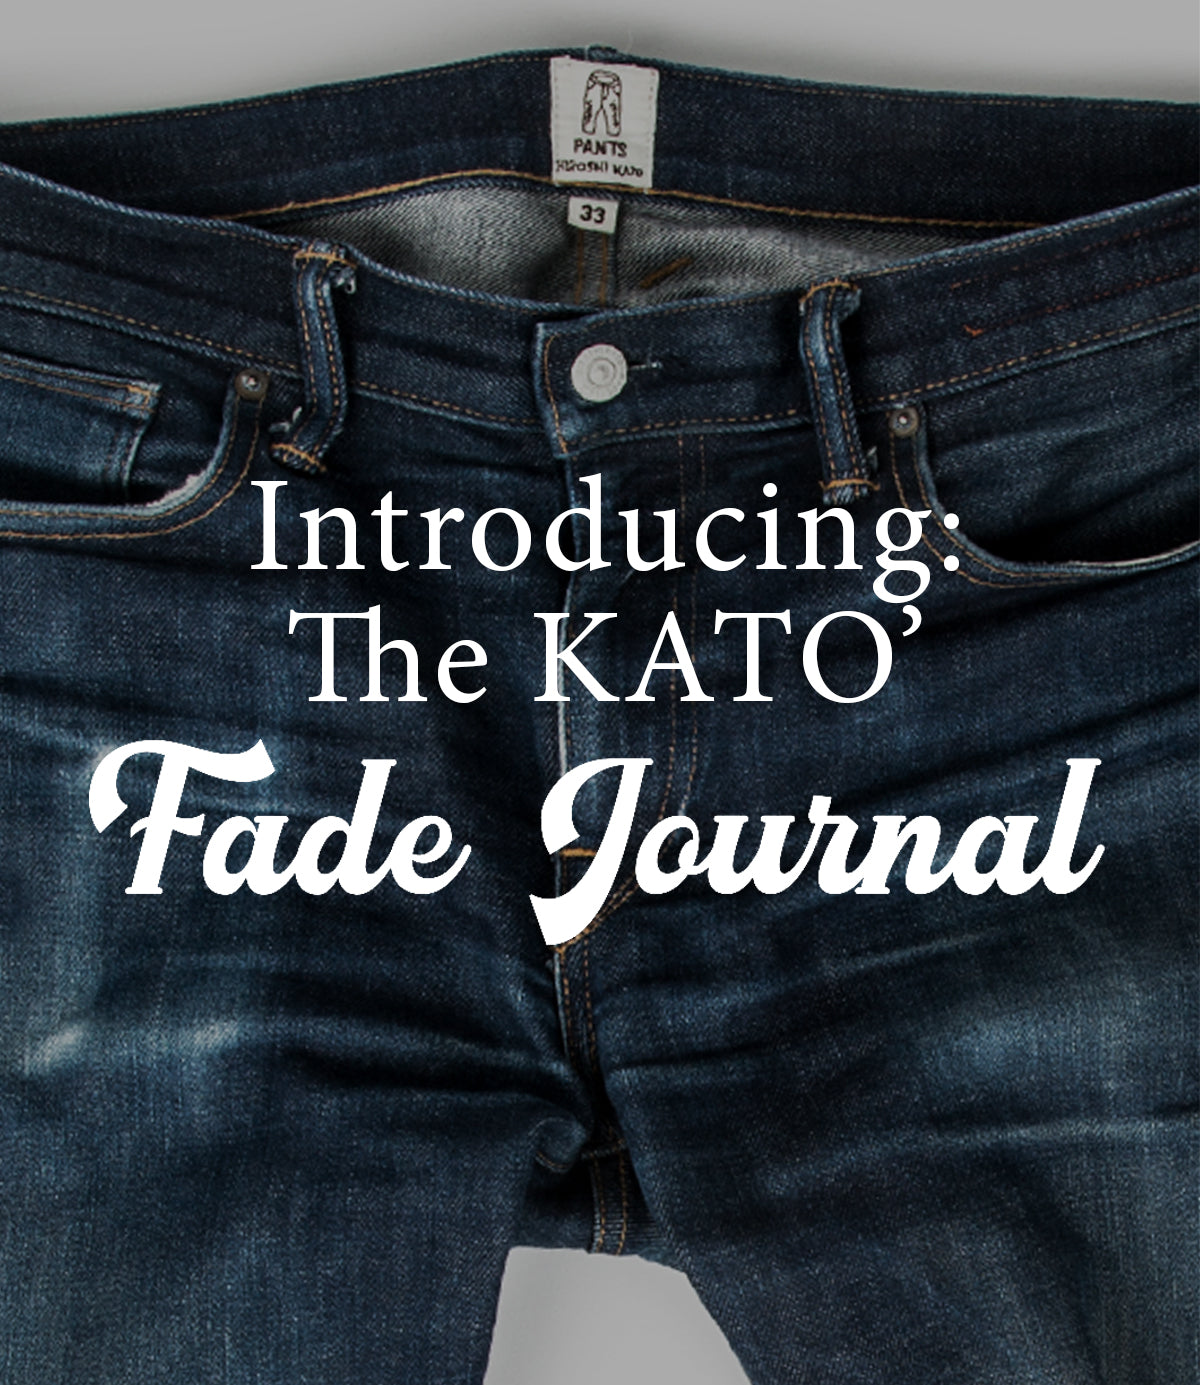 Introducing the KATO' Fade Journal